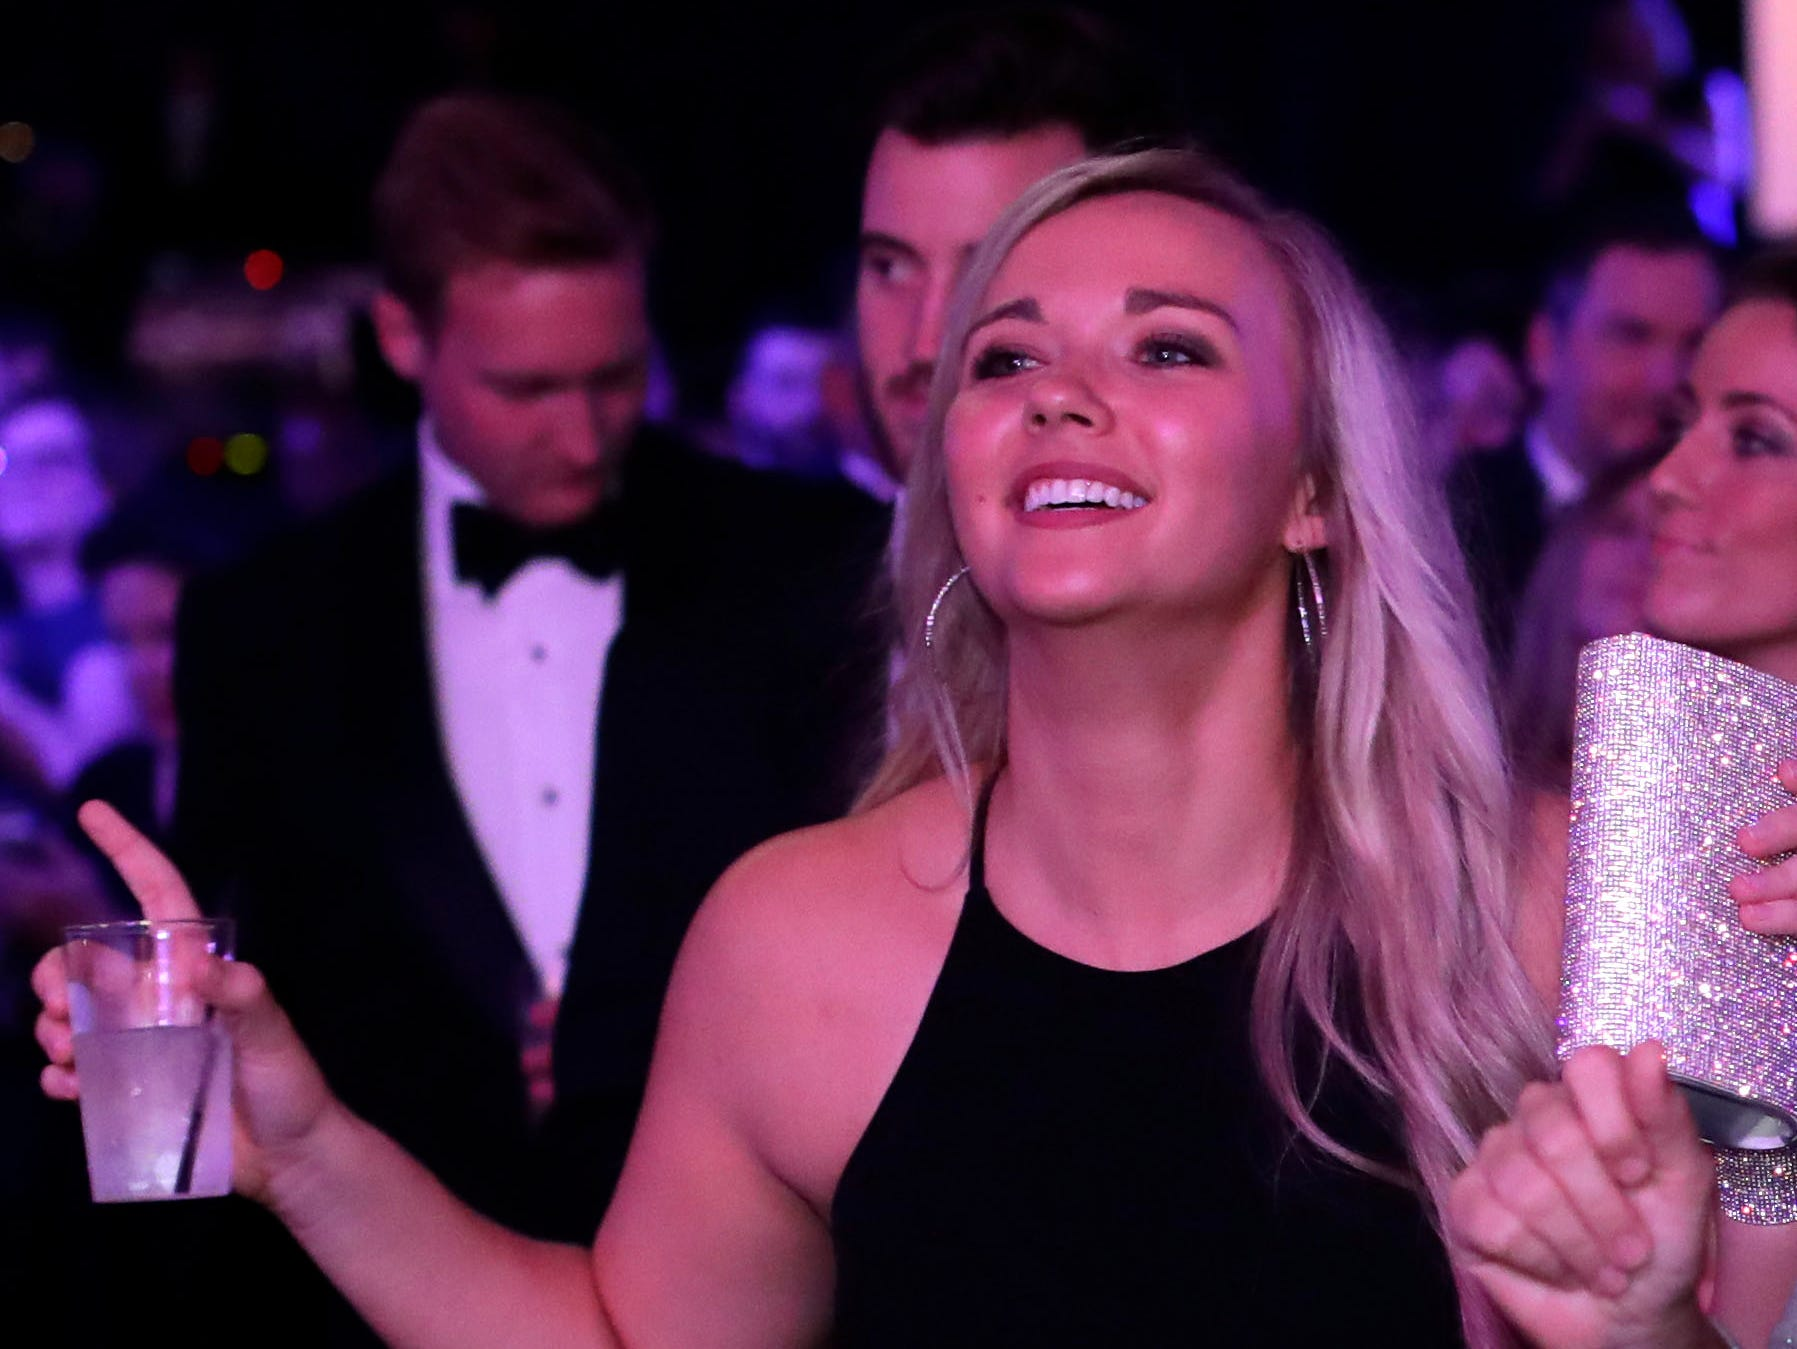 Hundreds of guests from all over Florida attend Florida's 46th Governor's Inaugural Ball at the Tucker Civic Center, Tuesday, Jan. 8, 2019.  A guest dances the night away as live music is performed.